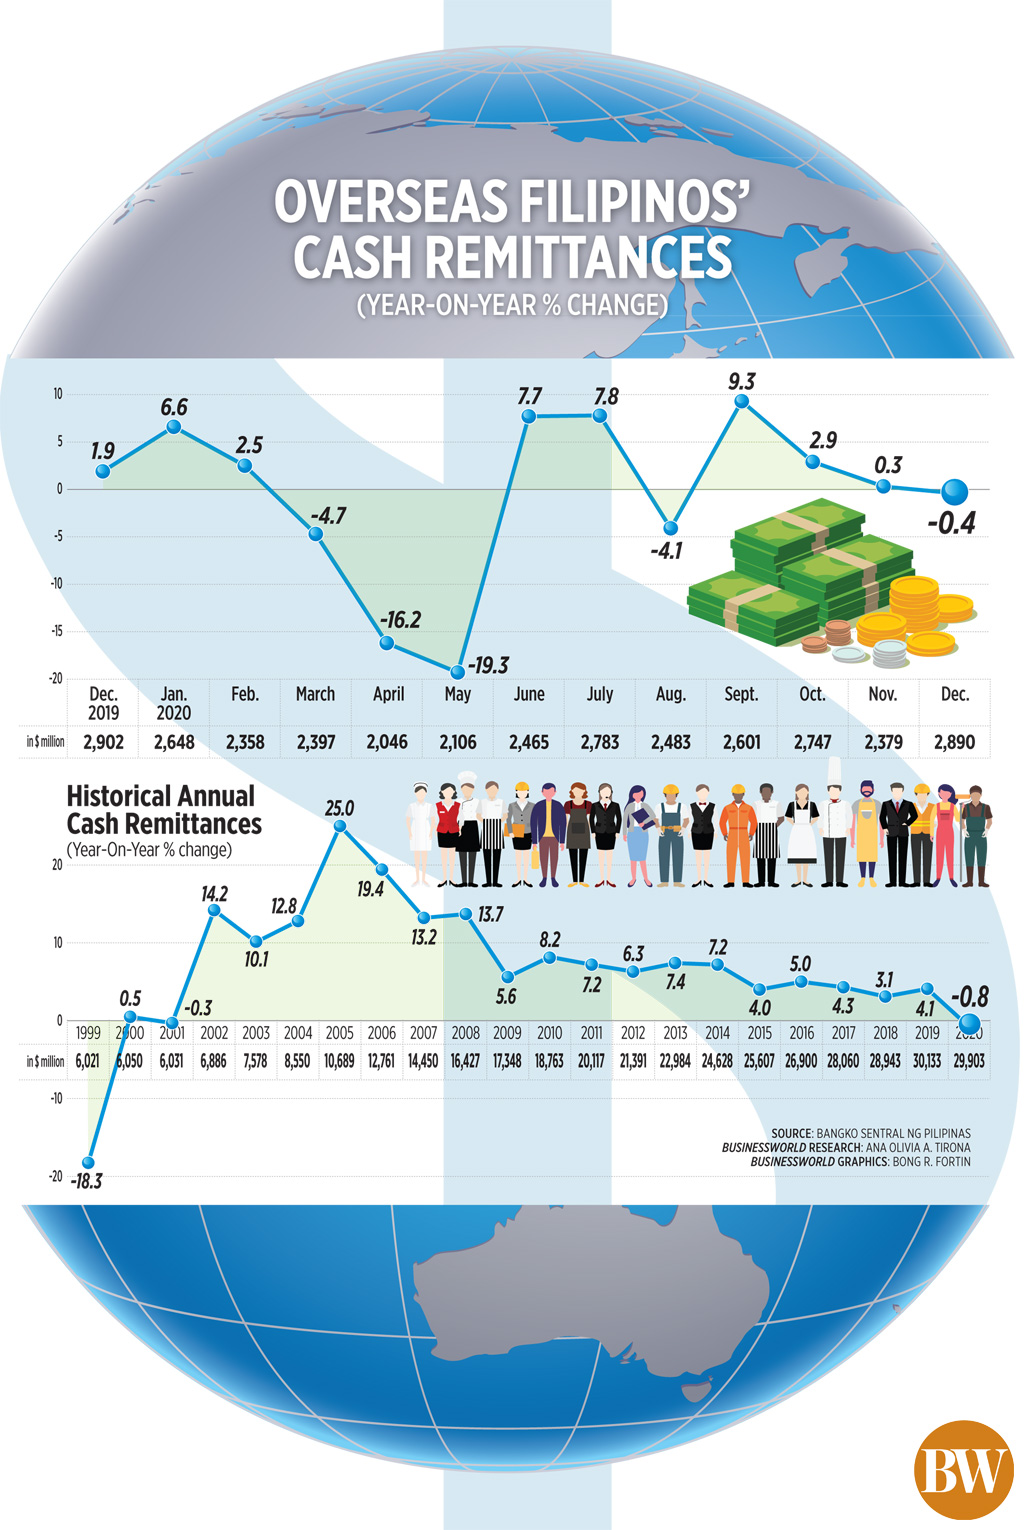 Overseas Filipinos' cash remittances (Dec. 2020)